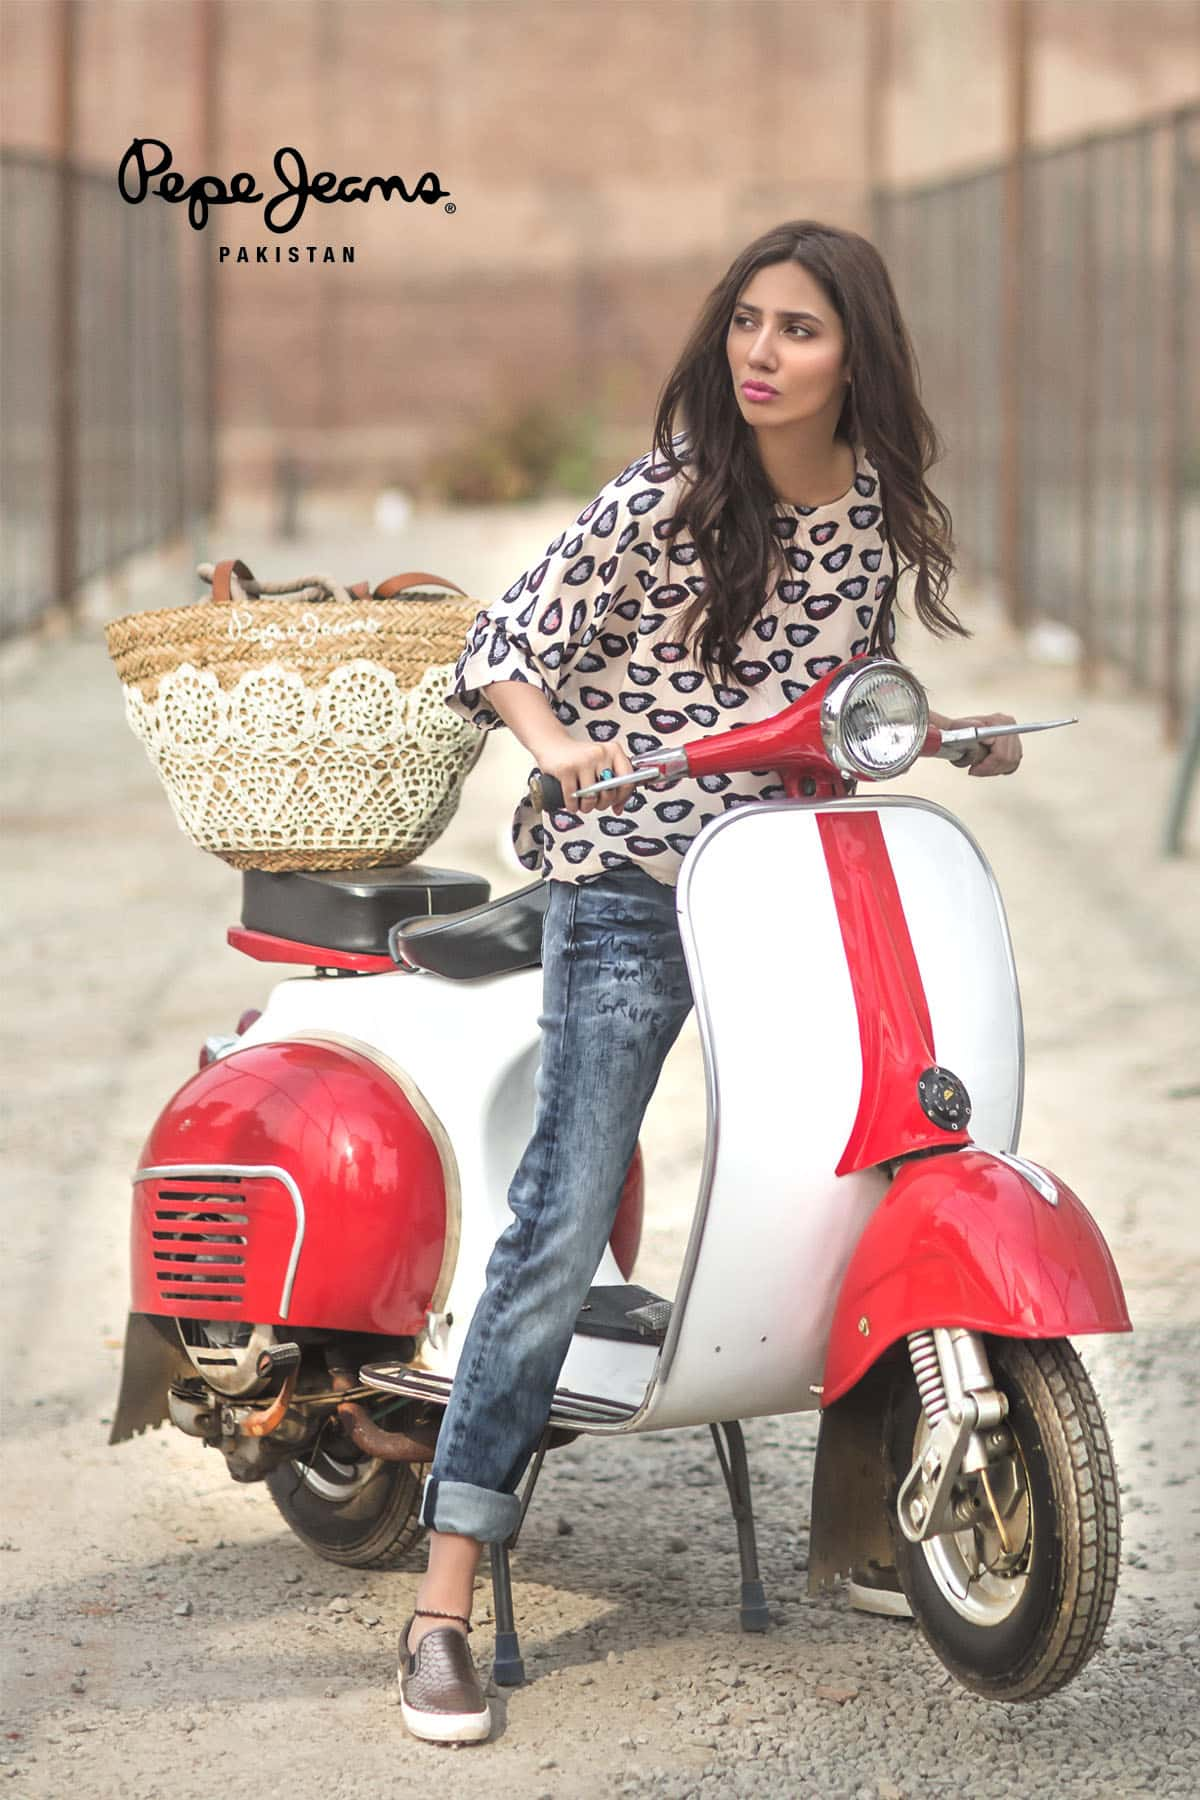 Mahira Khan for Pepe Jeans Pakistan Winter 2015 Campaign – #MKLovesPepe (2)